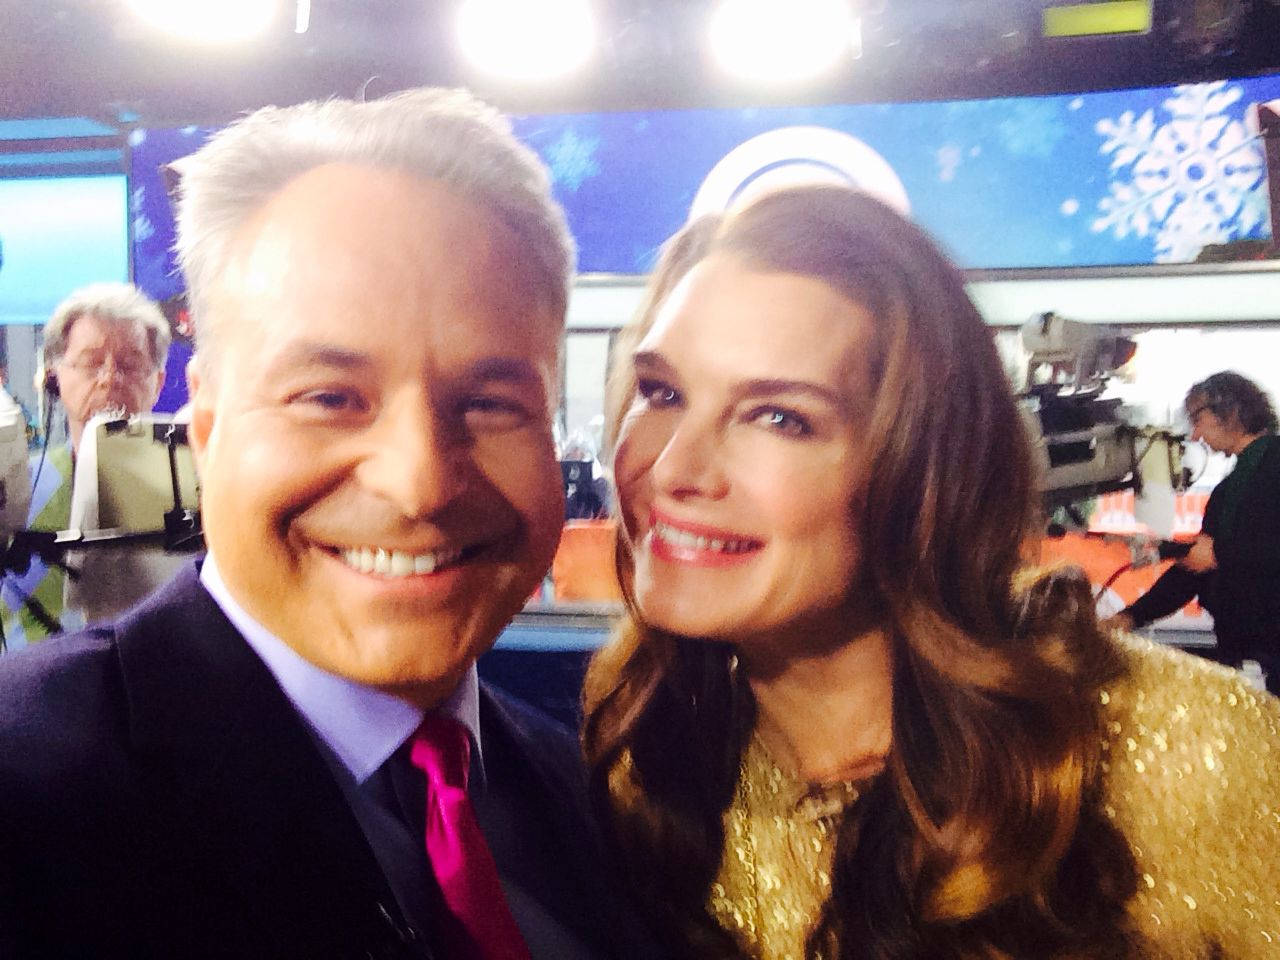 Clint Arthur with Brooke Shields